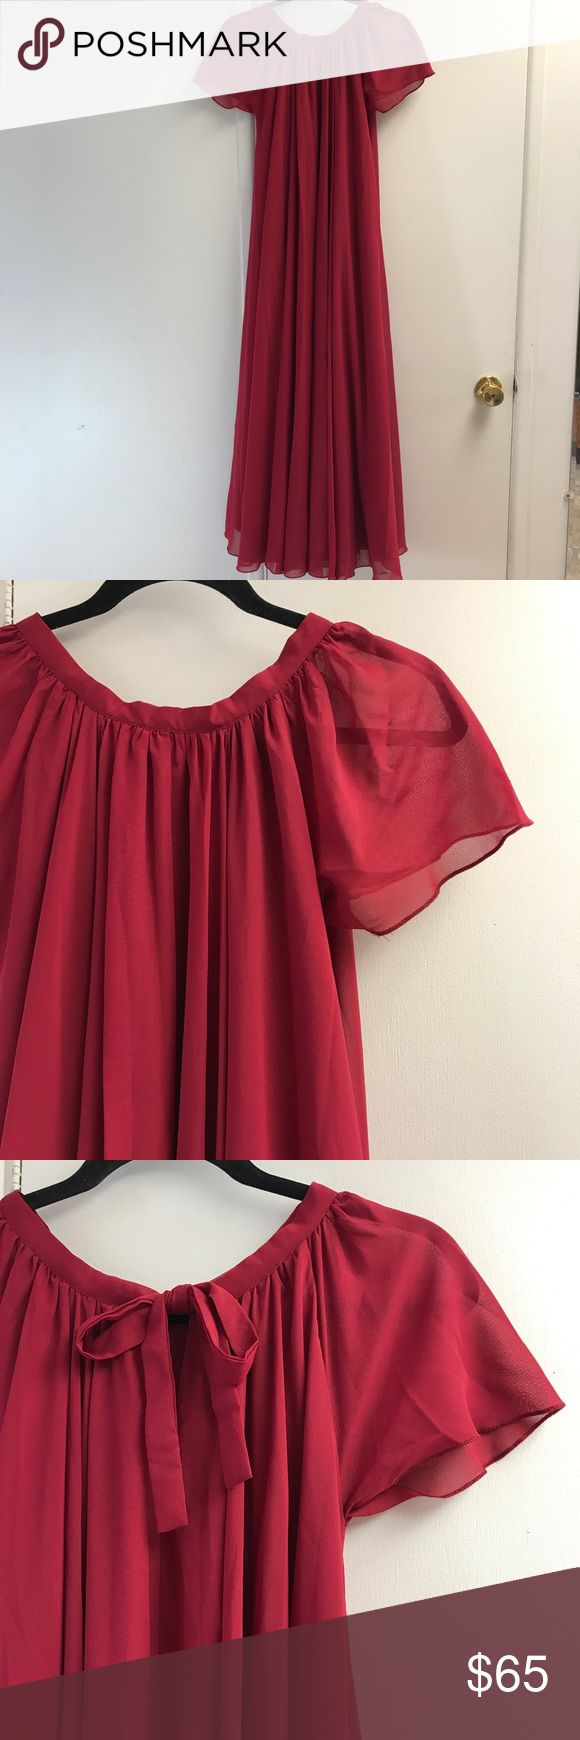 """Red/Wine/Burgundy Chiffon Petite Bridesmaid Dress Dress worn in my sister in law's wedding, purchased from Etsy. I am 5'1"""", for length reference. Fits an XS, XSP, S, or SP. Very very full and flowy, tie in the back. Like new, no flaws. Comes with three different belt options. Etsy Dresses Wedding"""